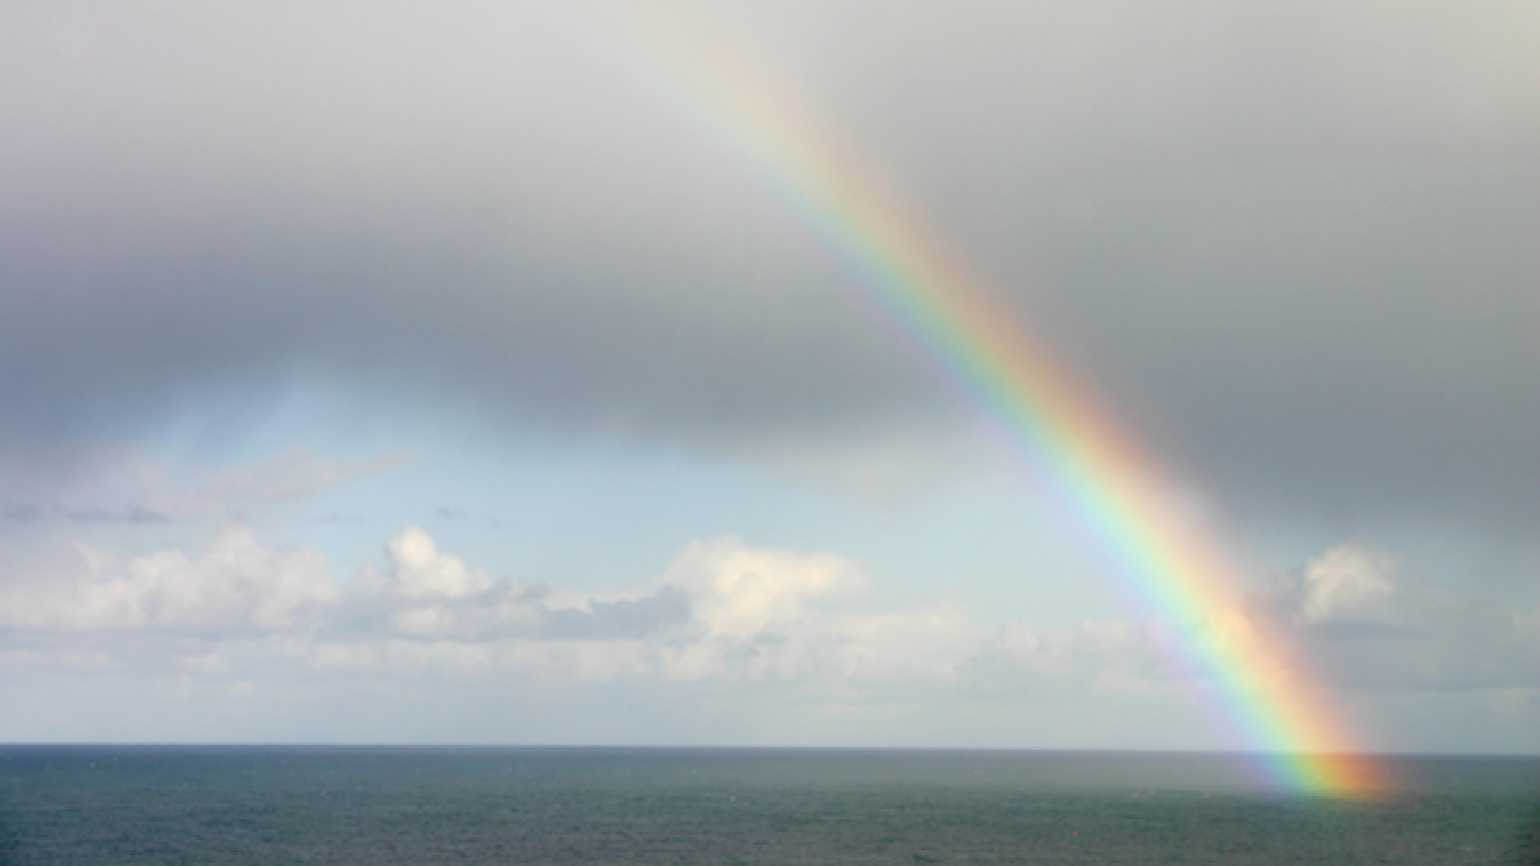 Are rainbows signs from God?